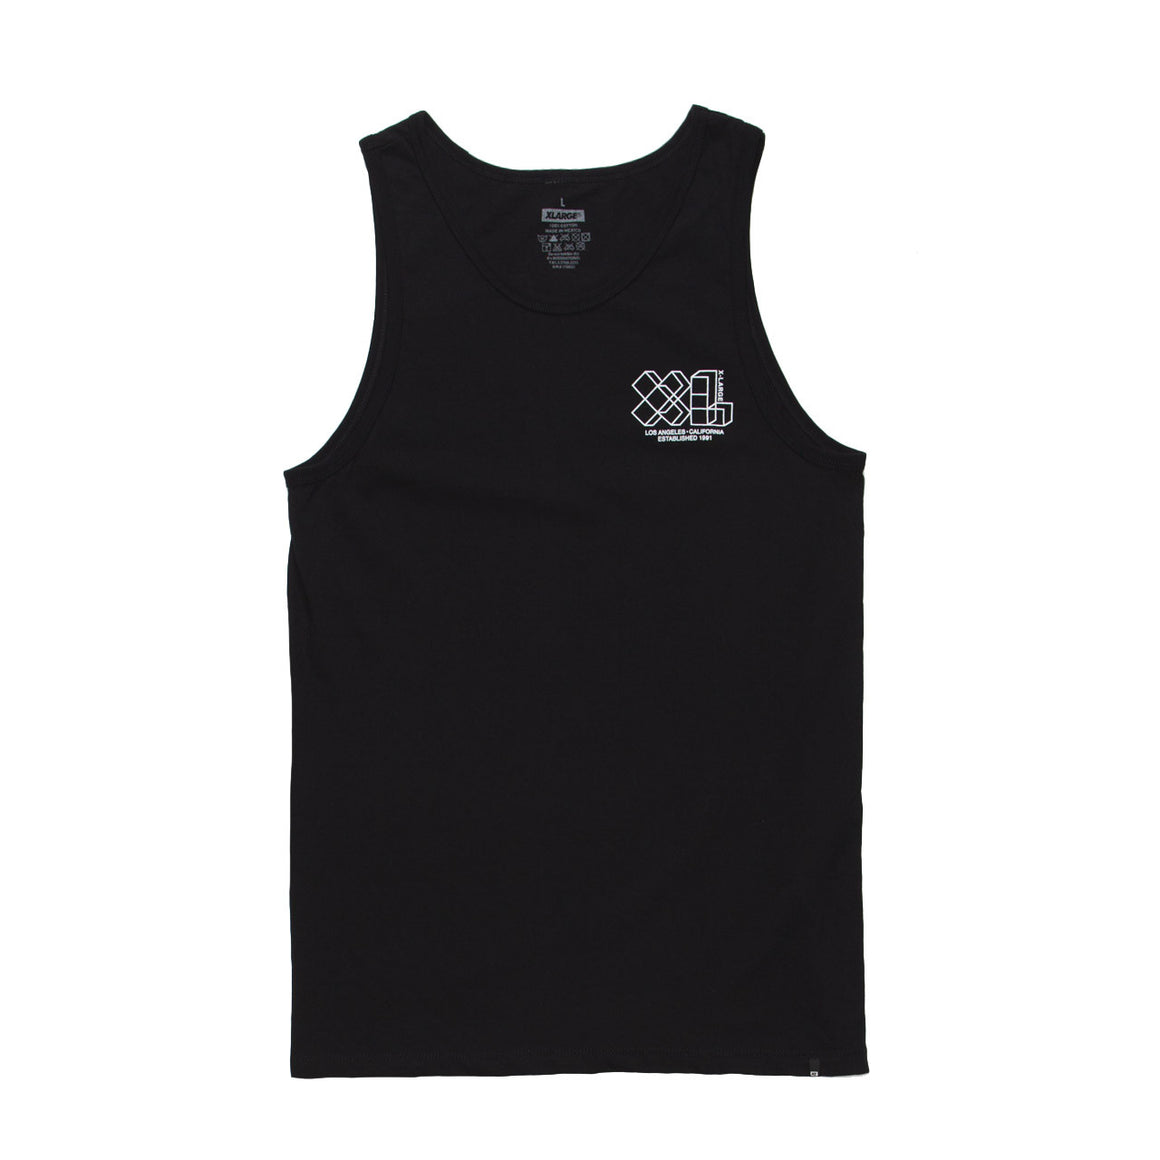 KINETIC TANK TOP - X-Large Clothing